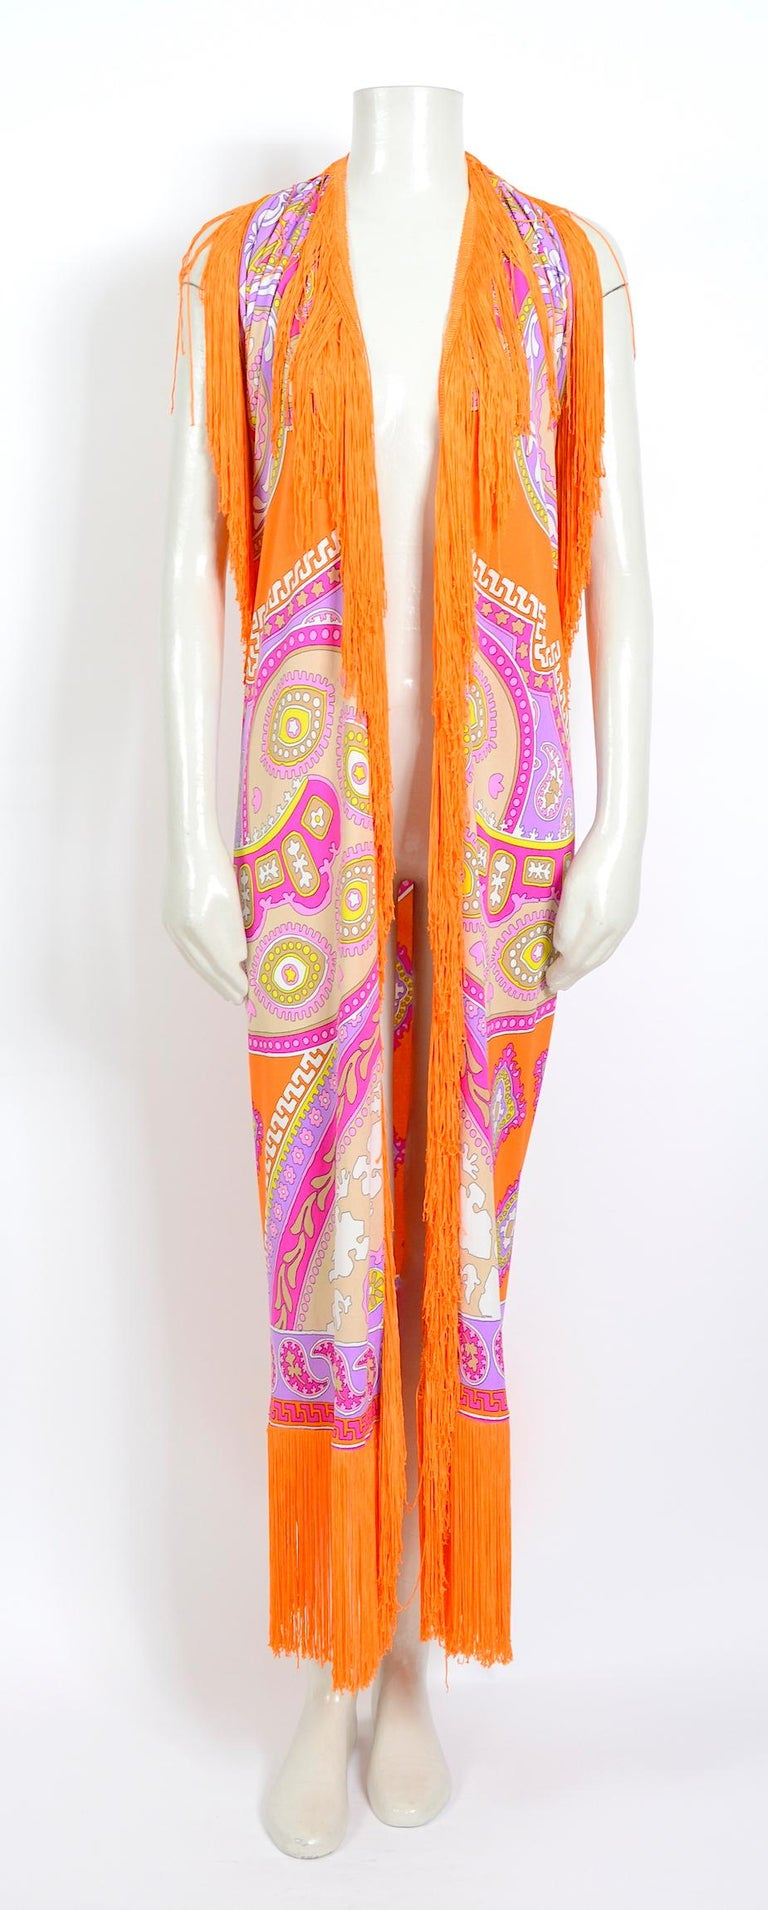 Leonard Paris vintage 1970s extra large silk jersey printed fringed scarf For Sale 3